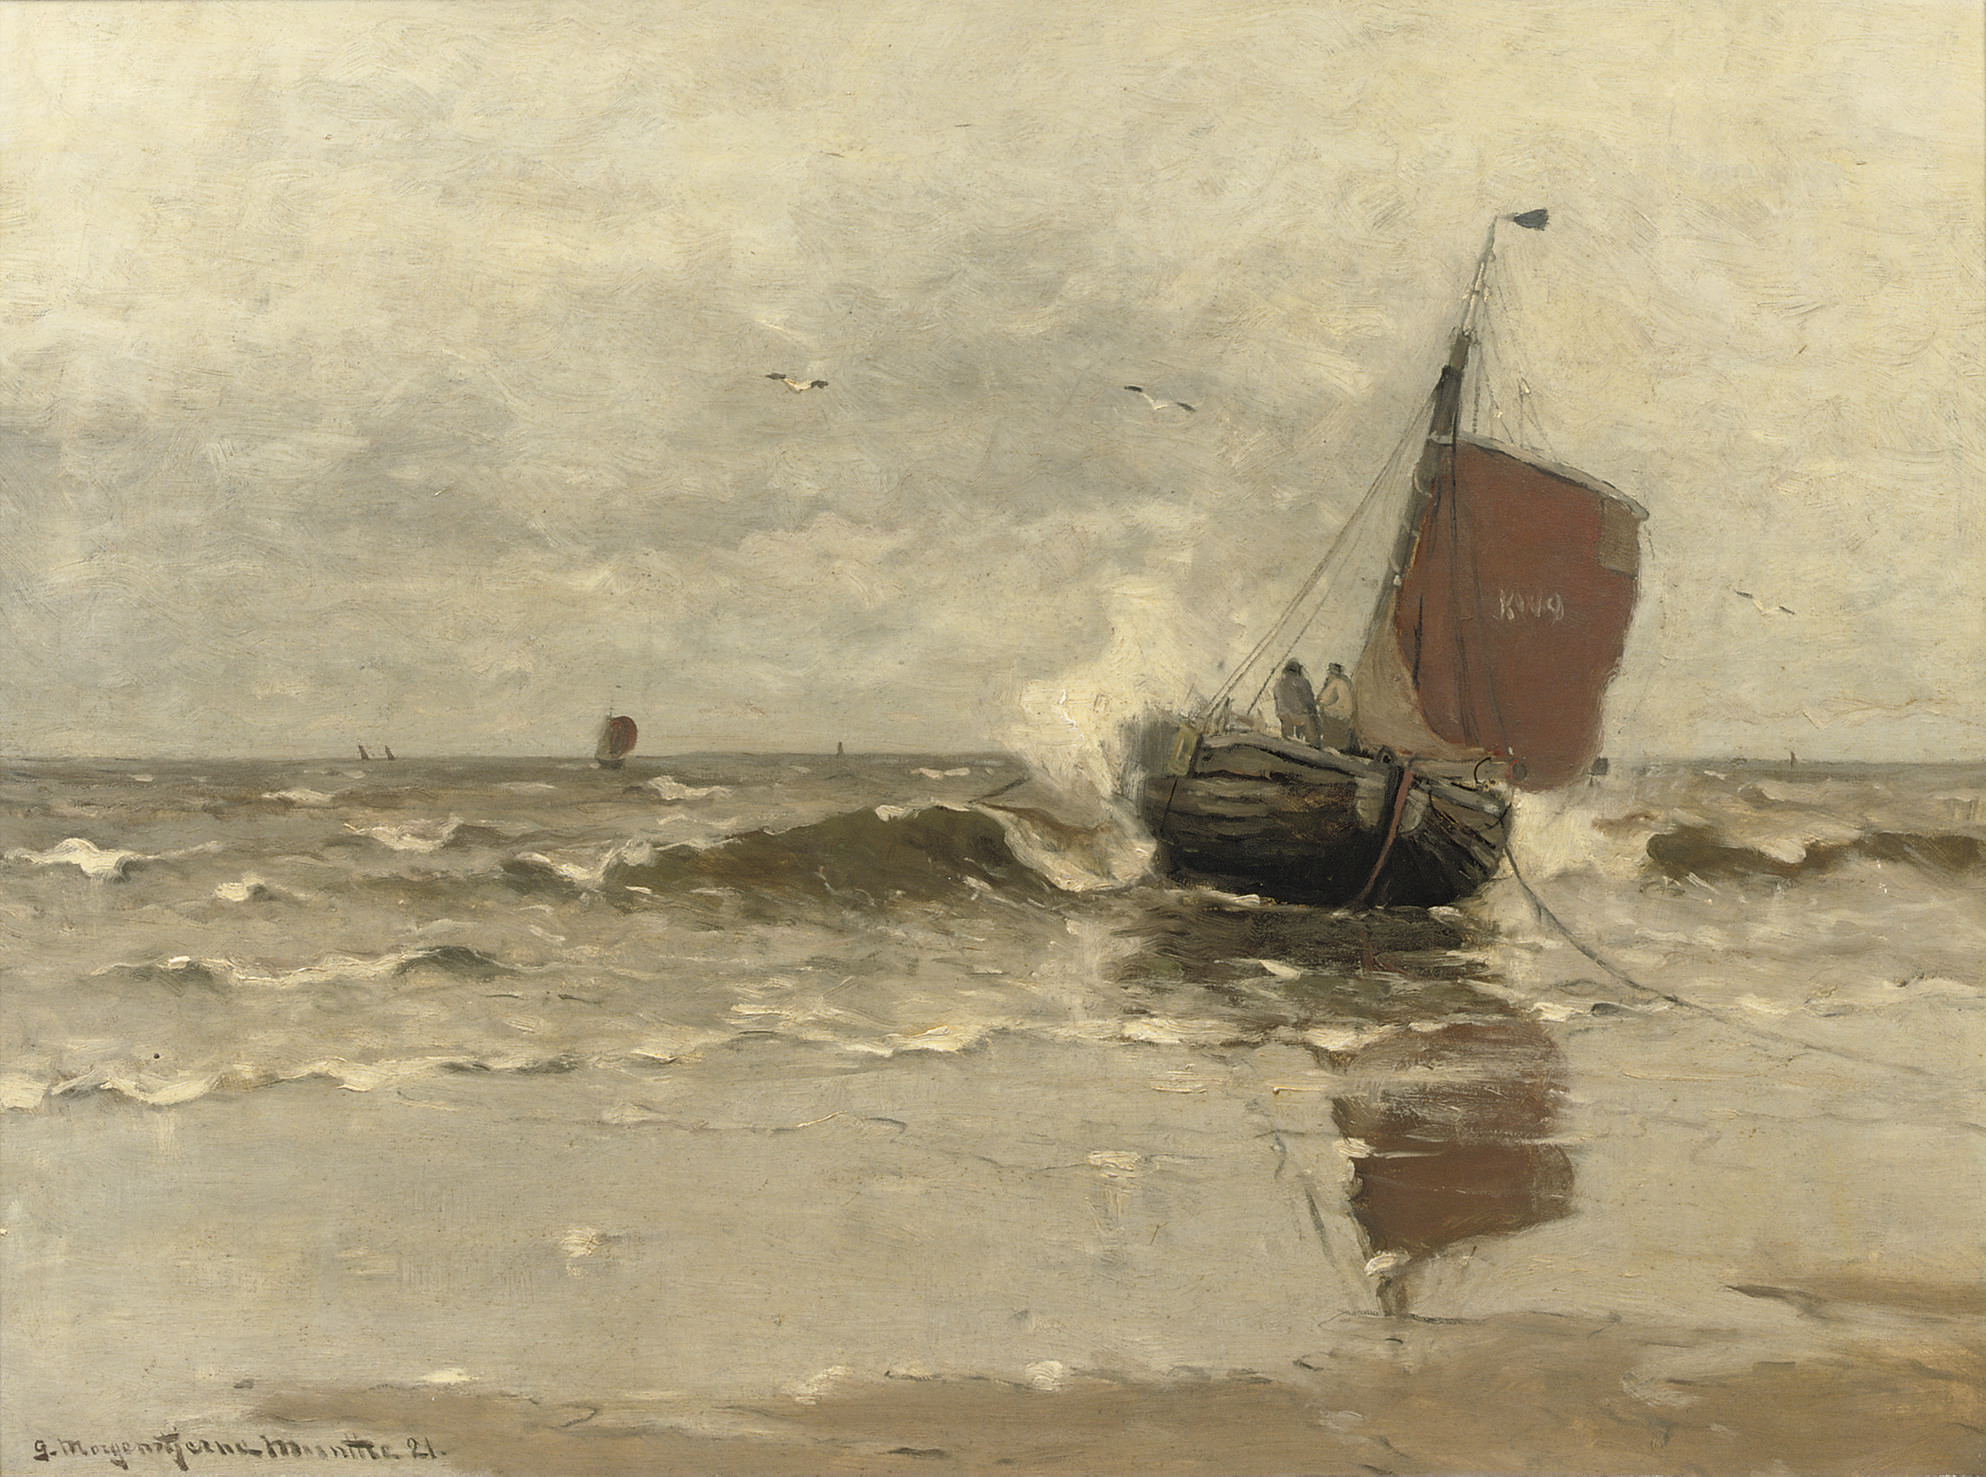 Bomschuit in the surf, Katwijk